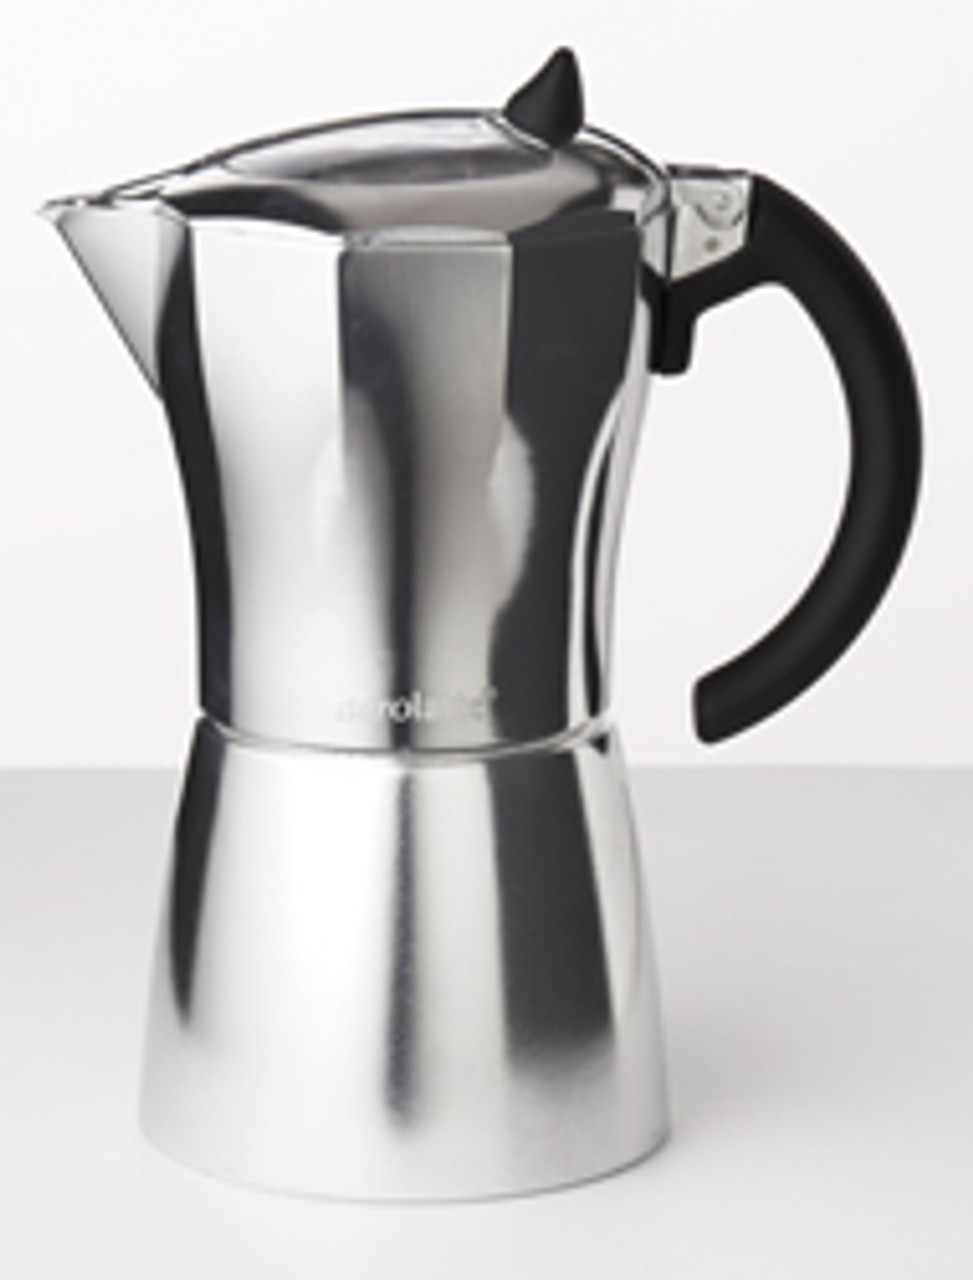 Aerolatte MokaVista Espresso Pot with Viewing Window on the Lid, 6 Cup